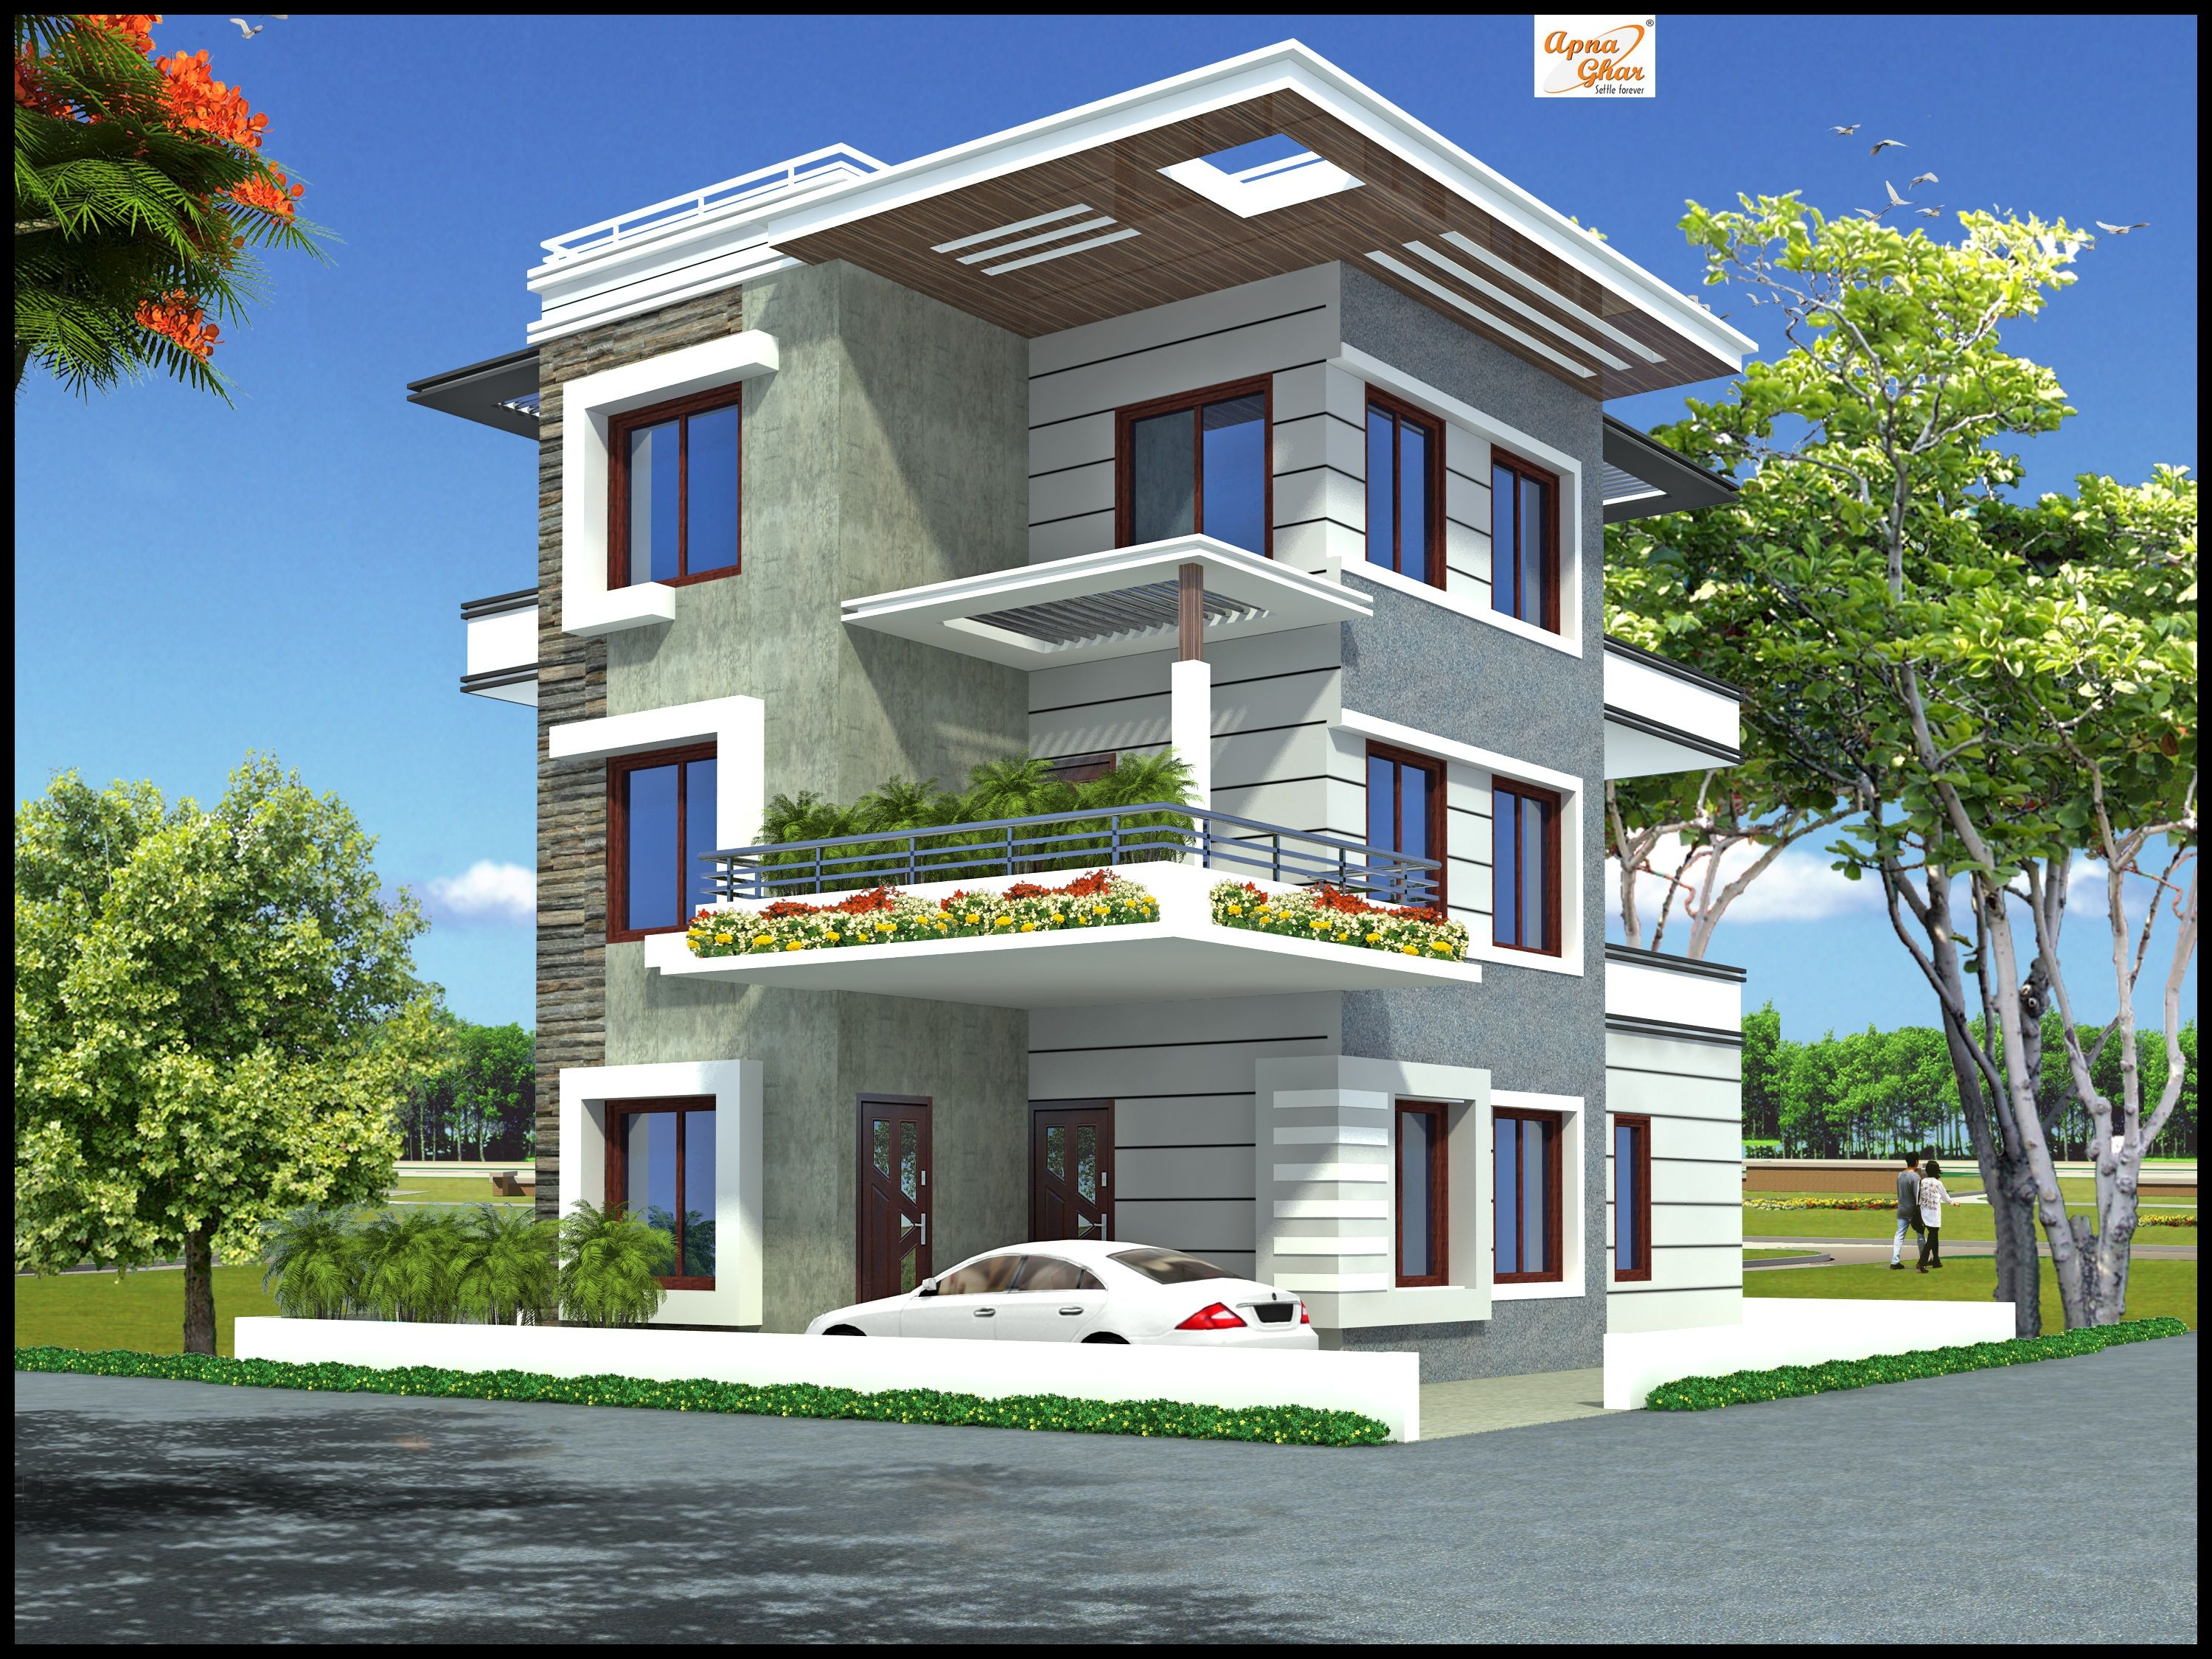 5 bedroom modern 3 floor house design area 192 sq mts for Looking for an architect to design a house